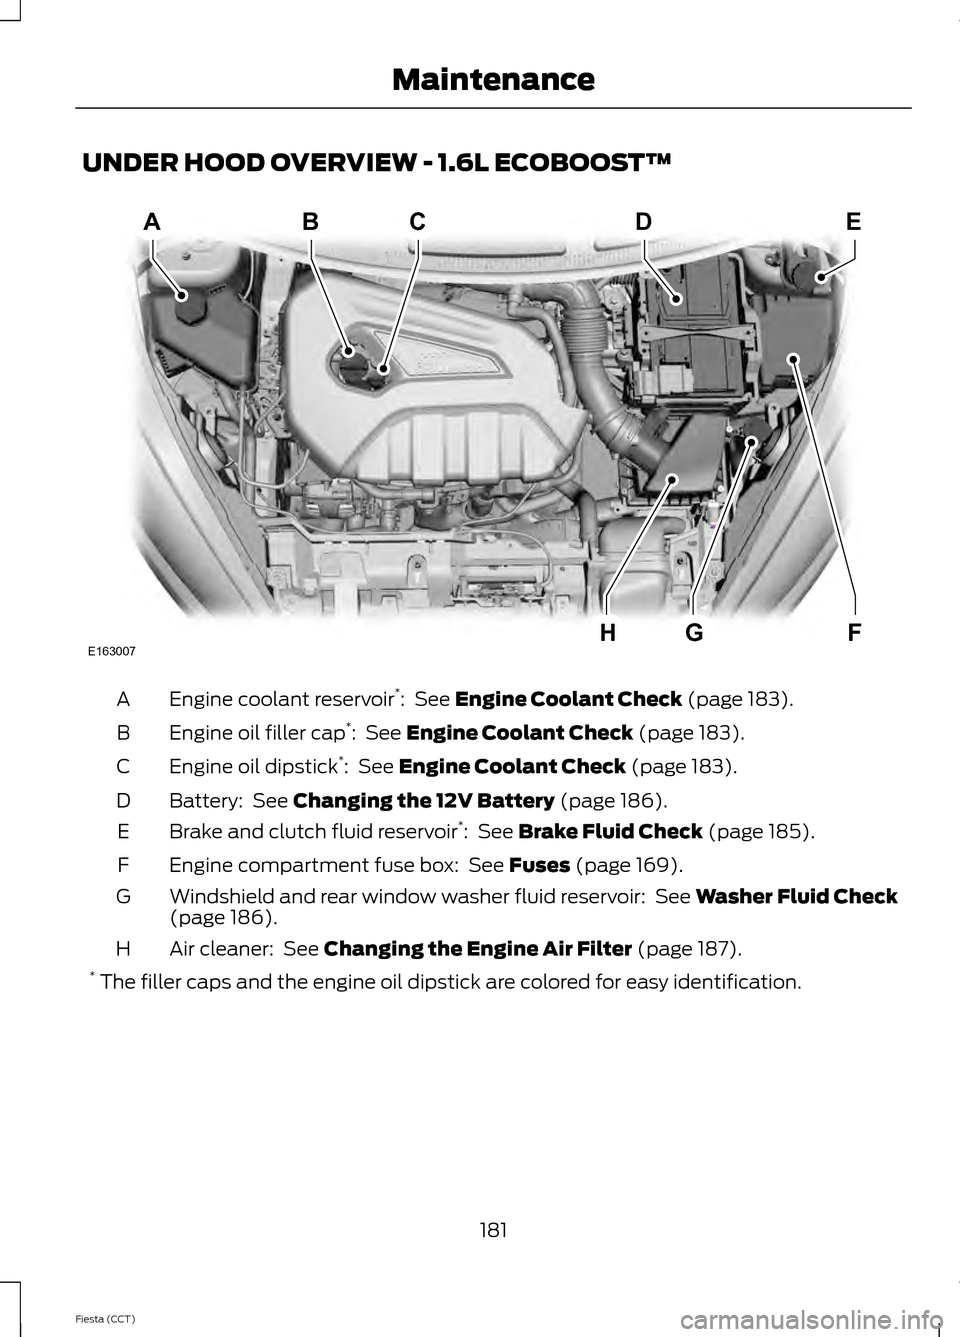 FORD FIESTA 2014 6.G Owners Manual, Page 184